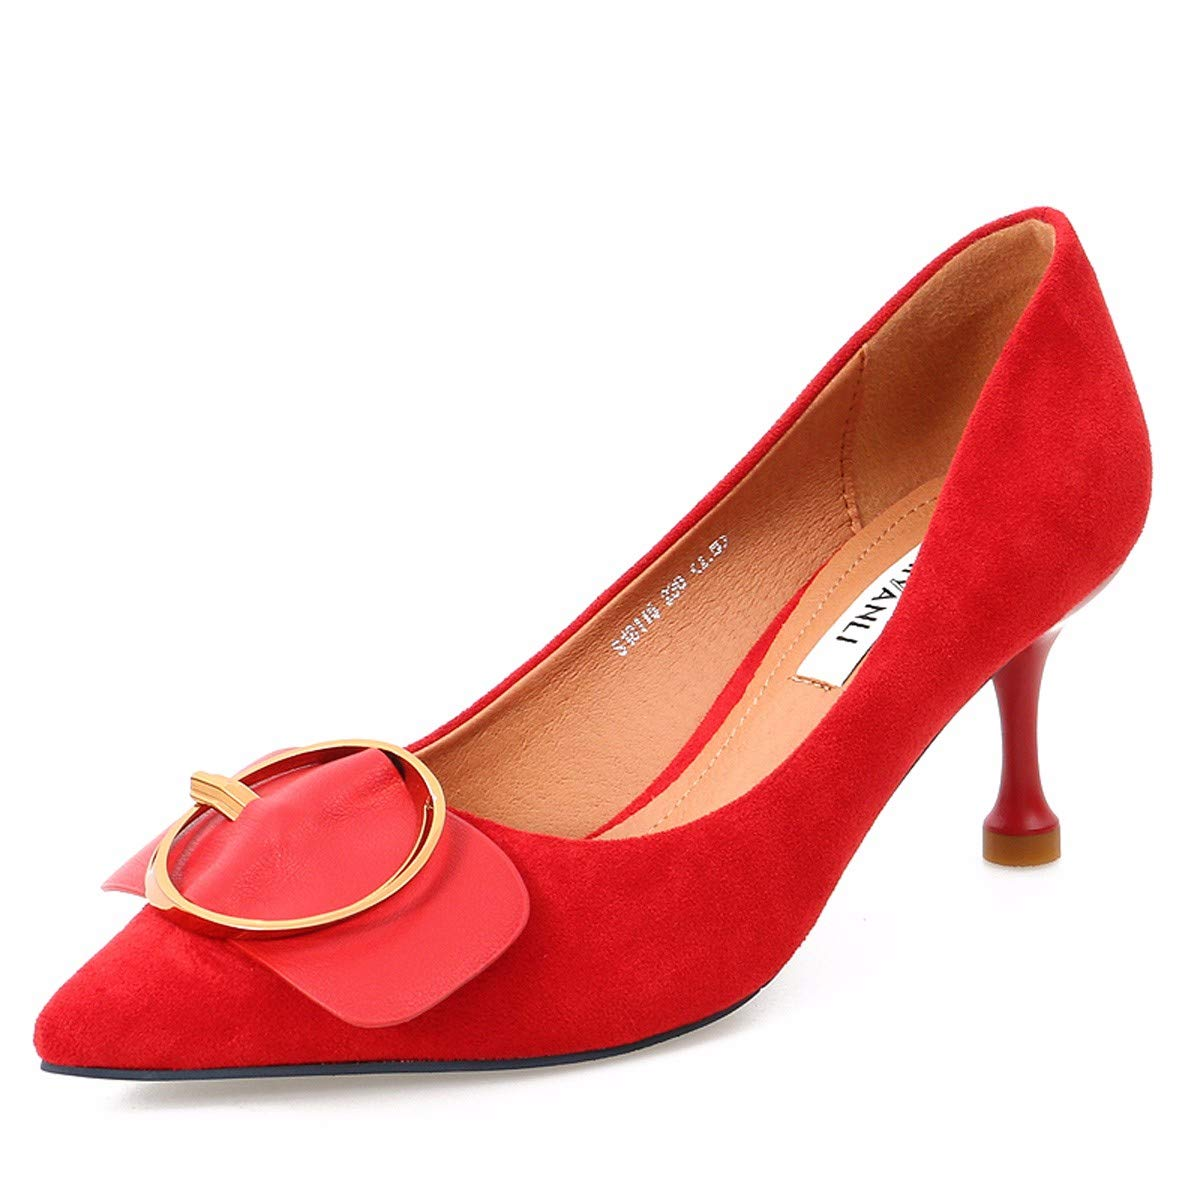 SFSYDDY-Summer Fashion Fine with Sharp Pointed Velvet Belt Buckle Shallow Mouth Commuting 7Cm High Heel Women's Shoes Wedding Shoes.Thirty-Four Black